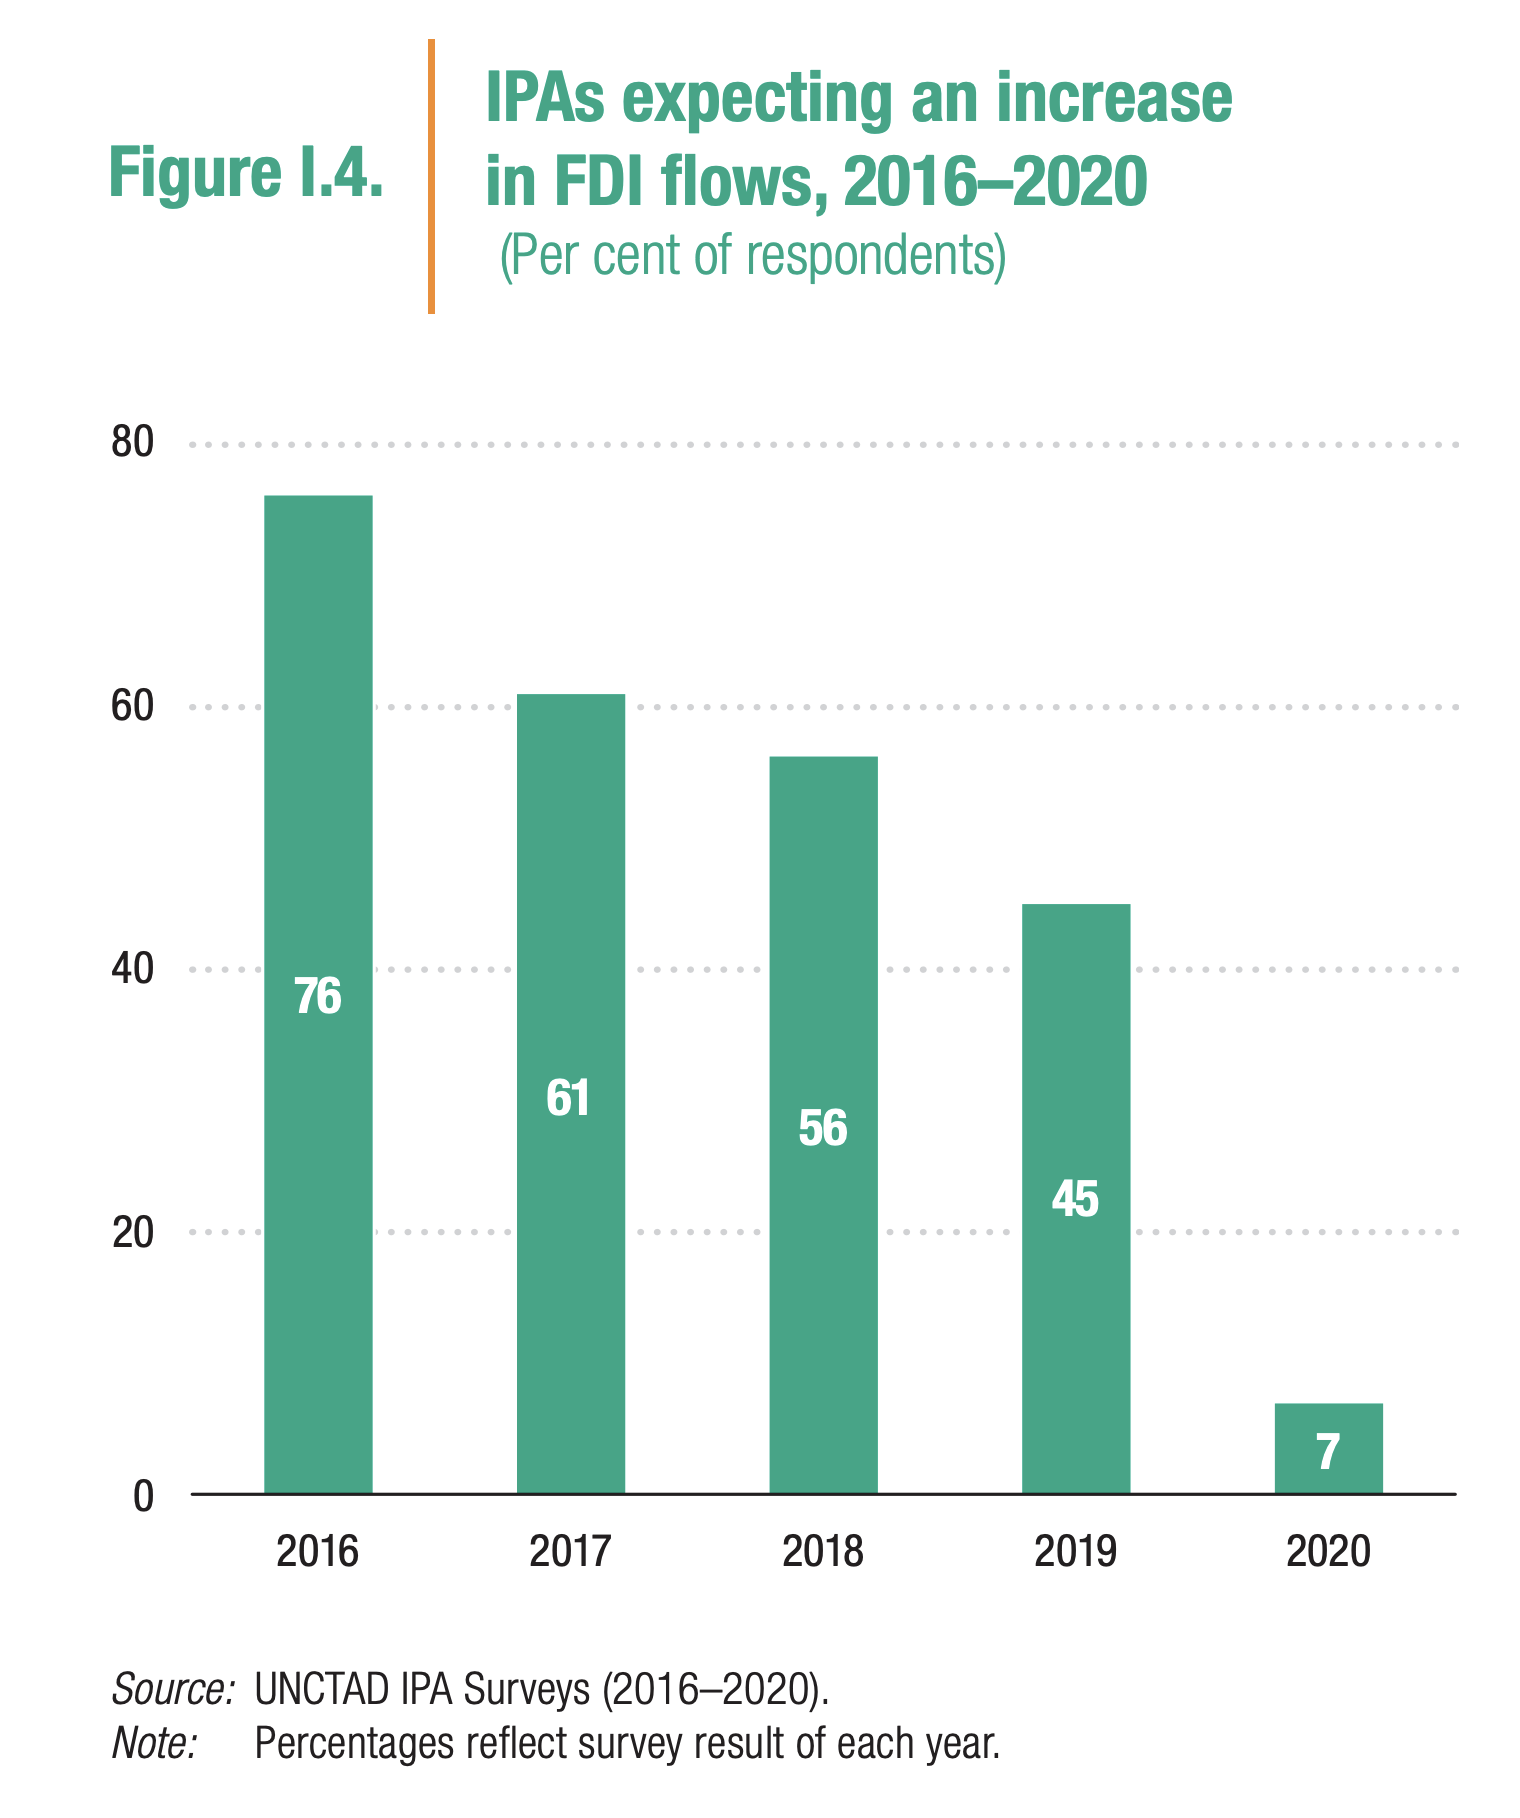 IPAs have drastically lowered their expectations for FDI as a result of the crisis